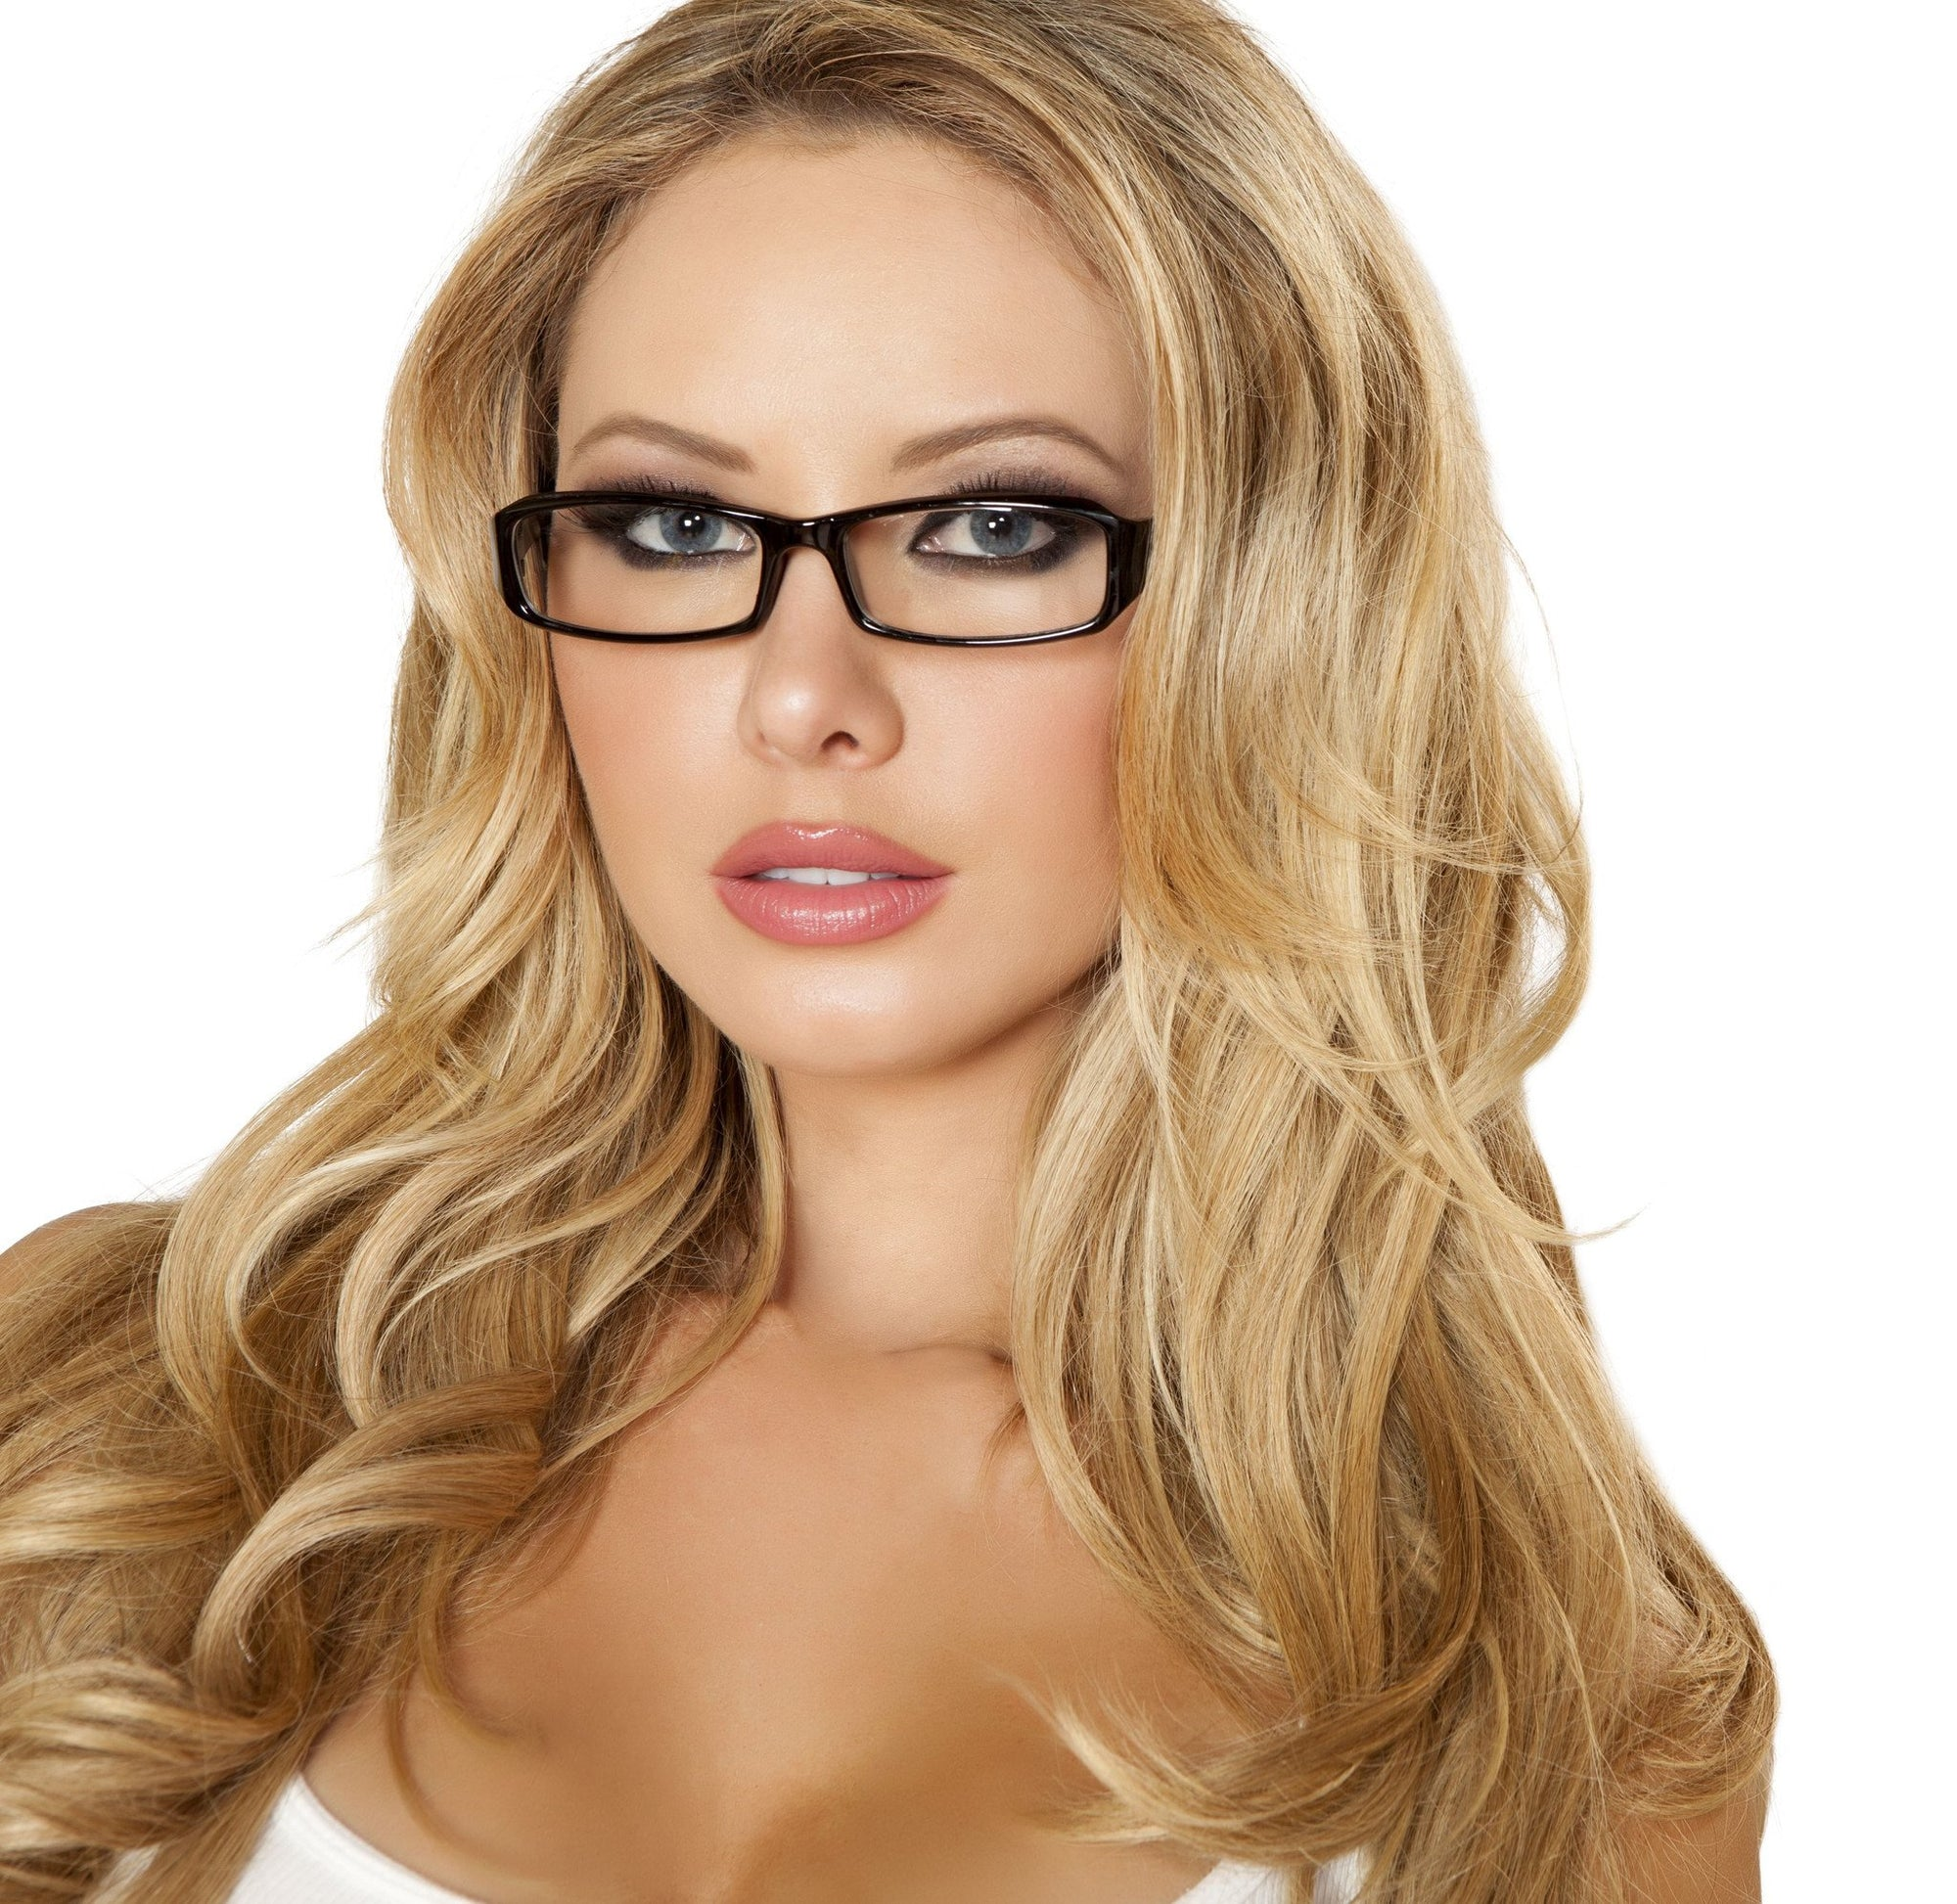 Buy Secretary Glasses from Rave Fix for $3.75 with Same Day Shipping Designed by Roma Costume G103-AS-O/S